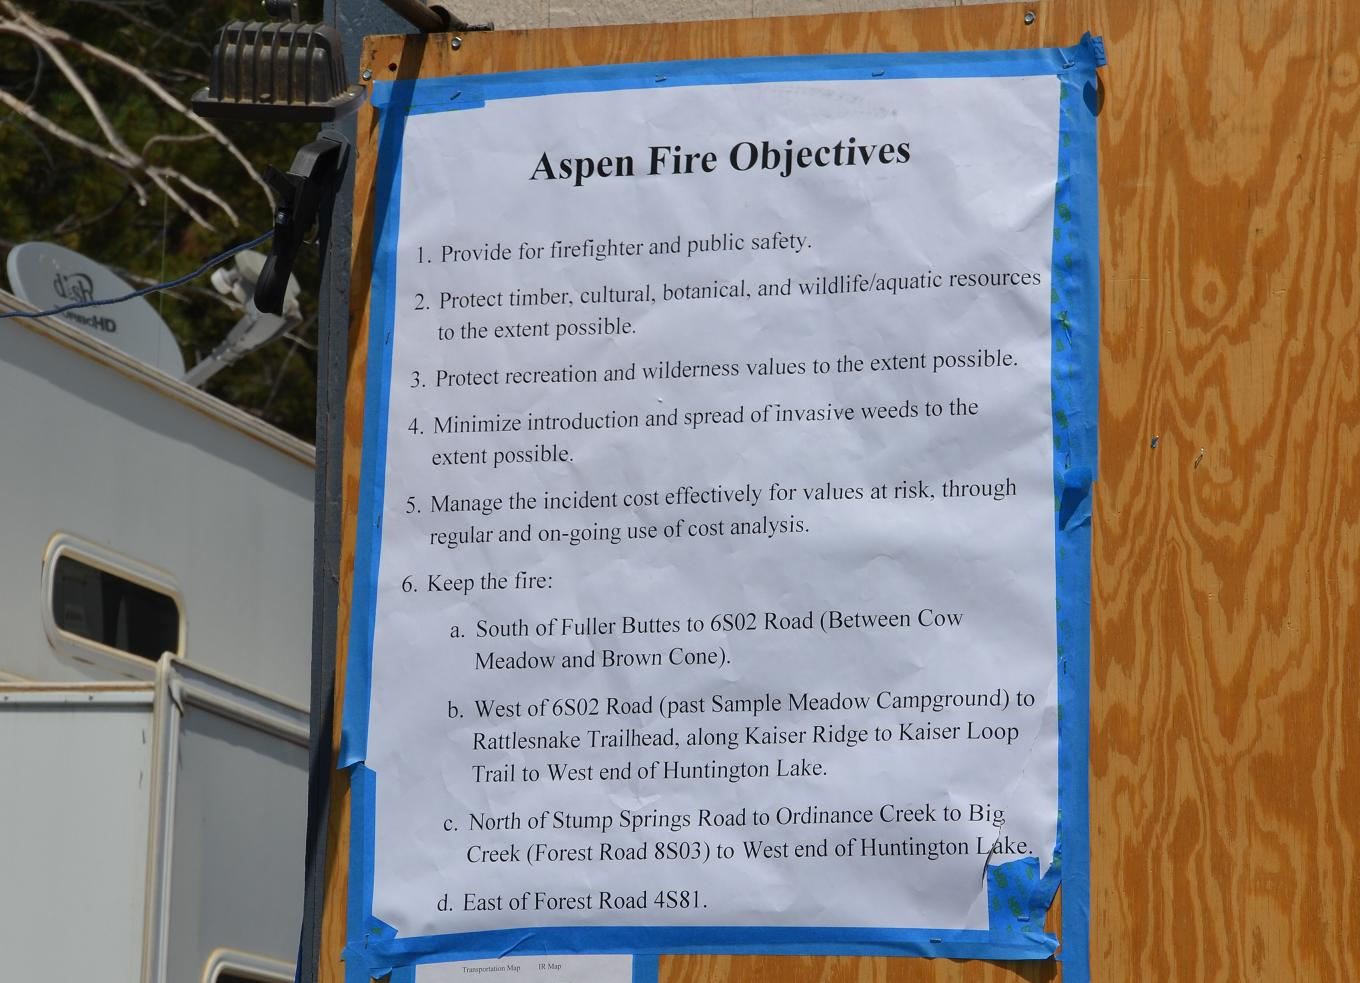 Aspen Fire Objectives